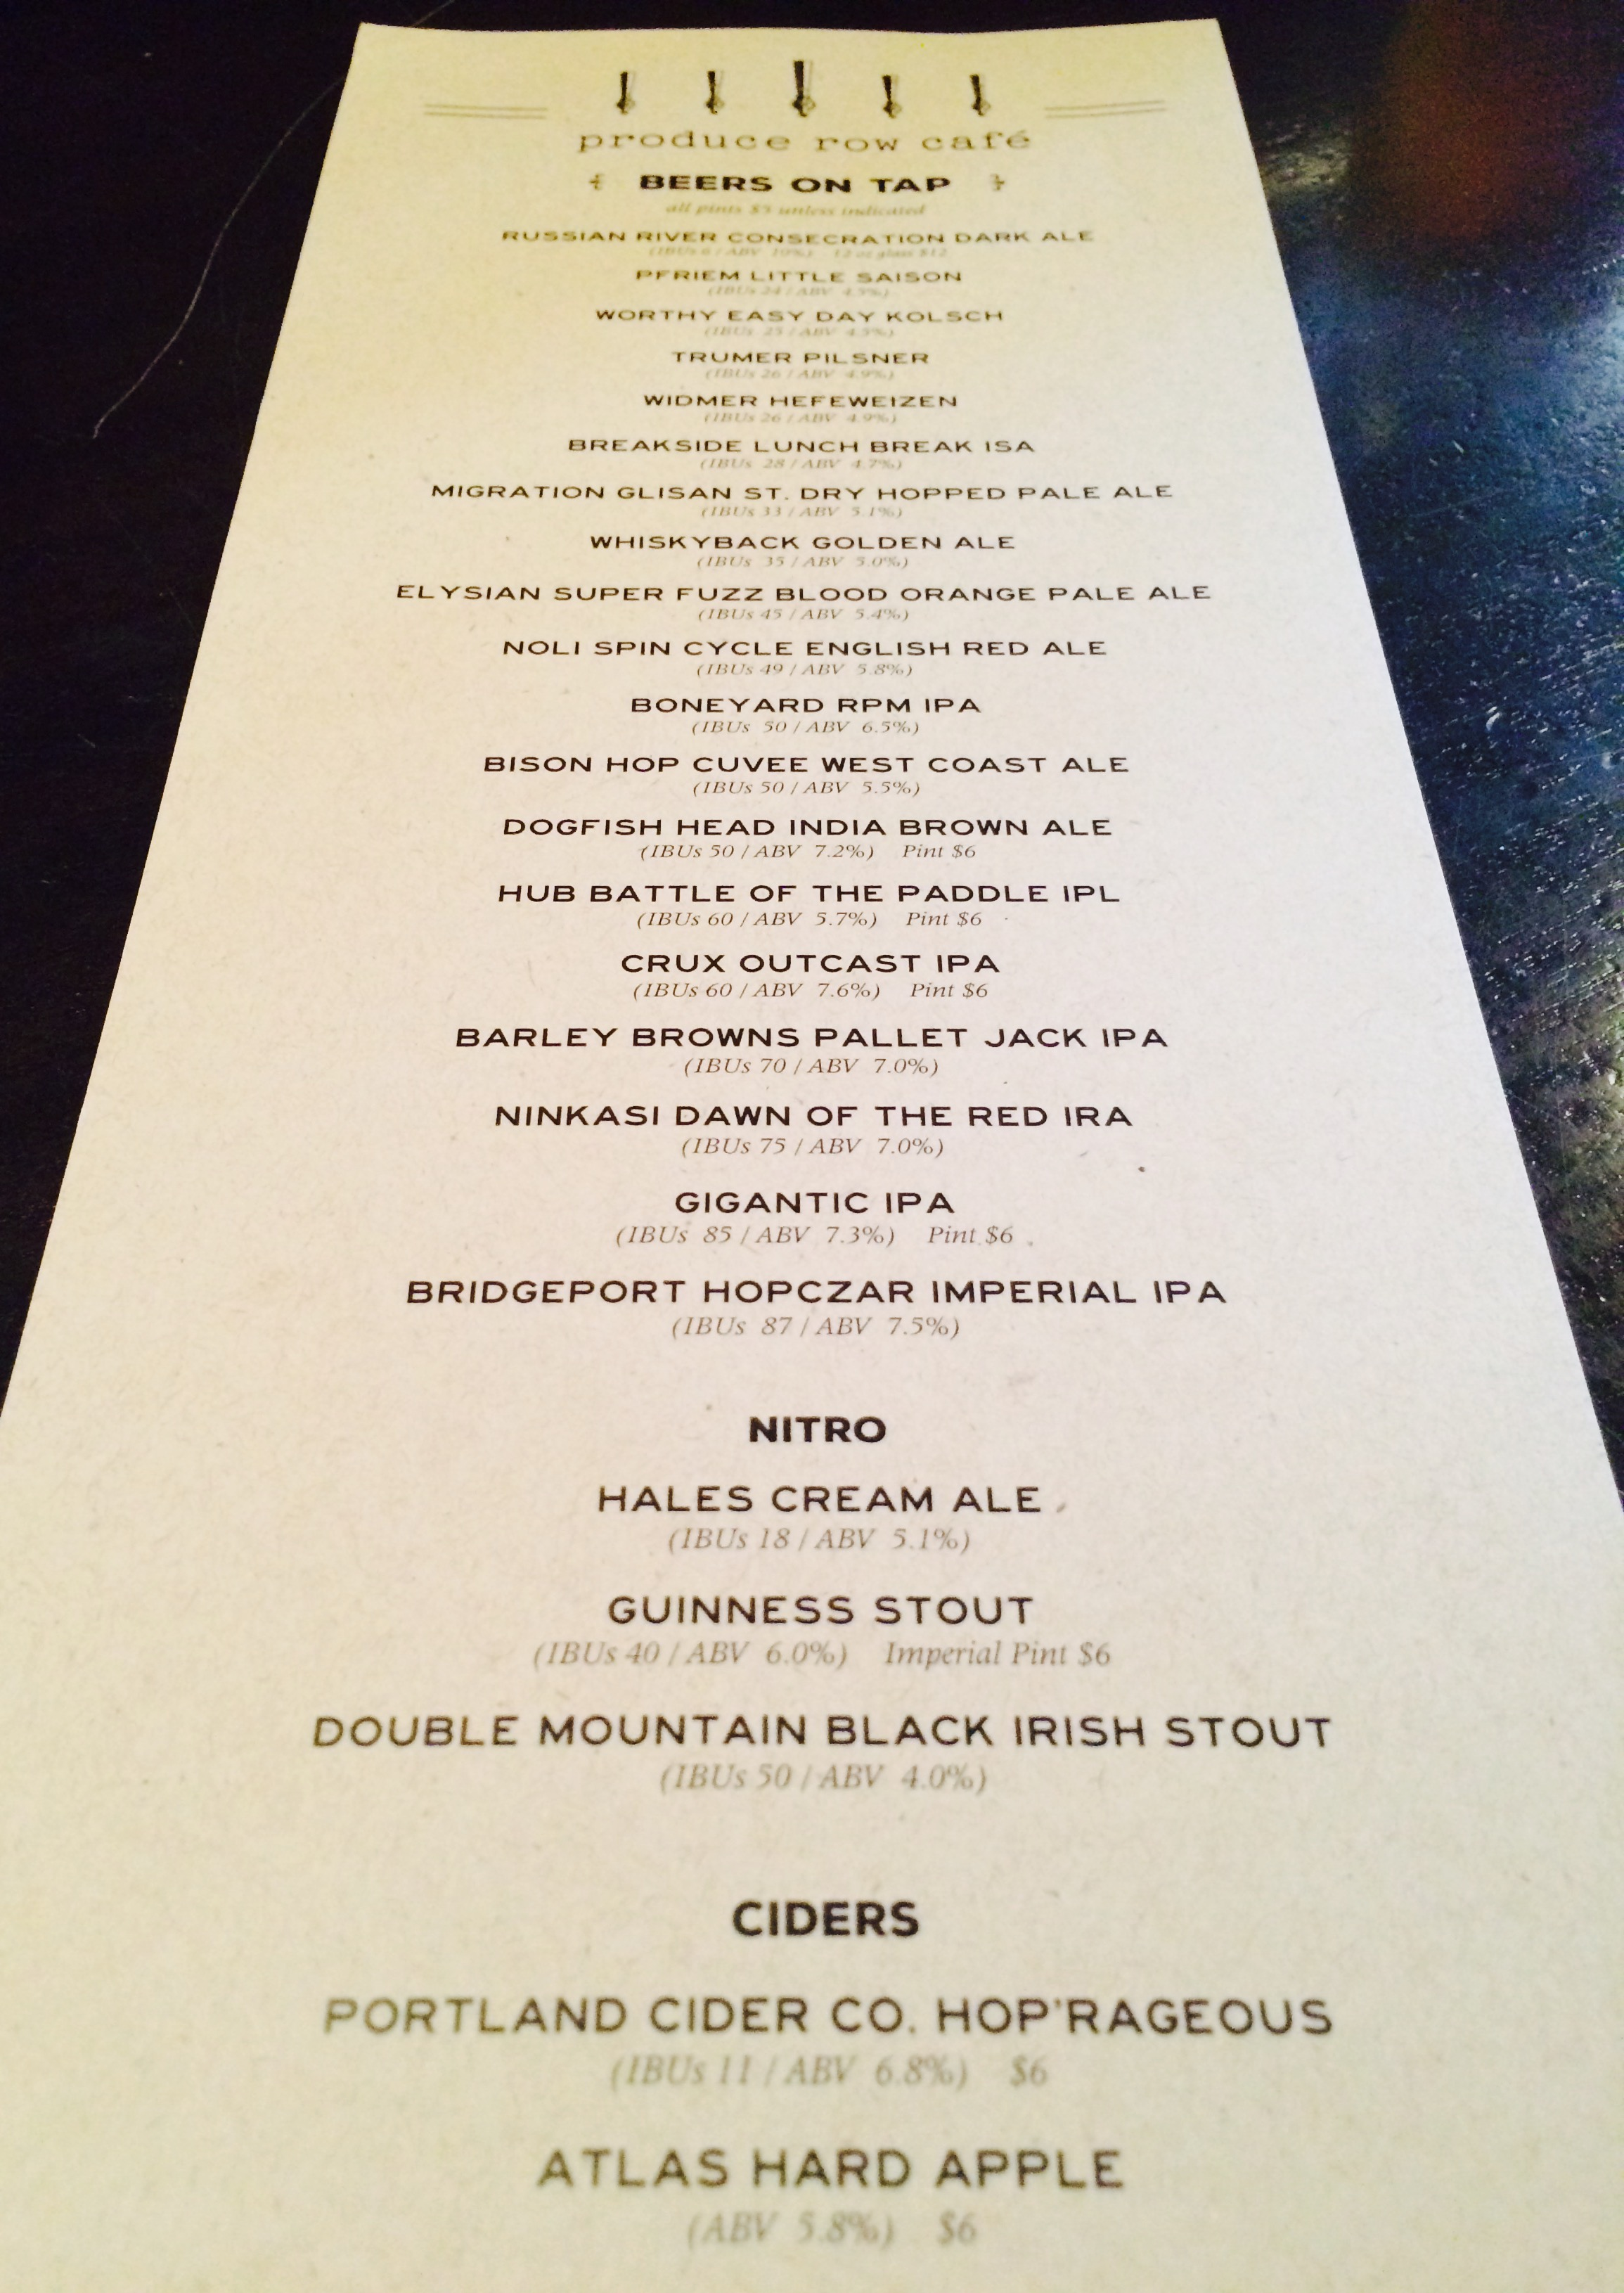 Reopening Night Beer Menu at Produce Row Cafe